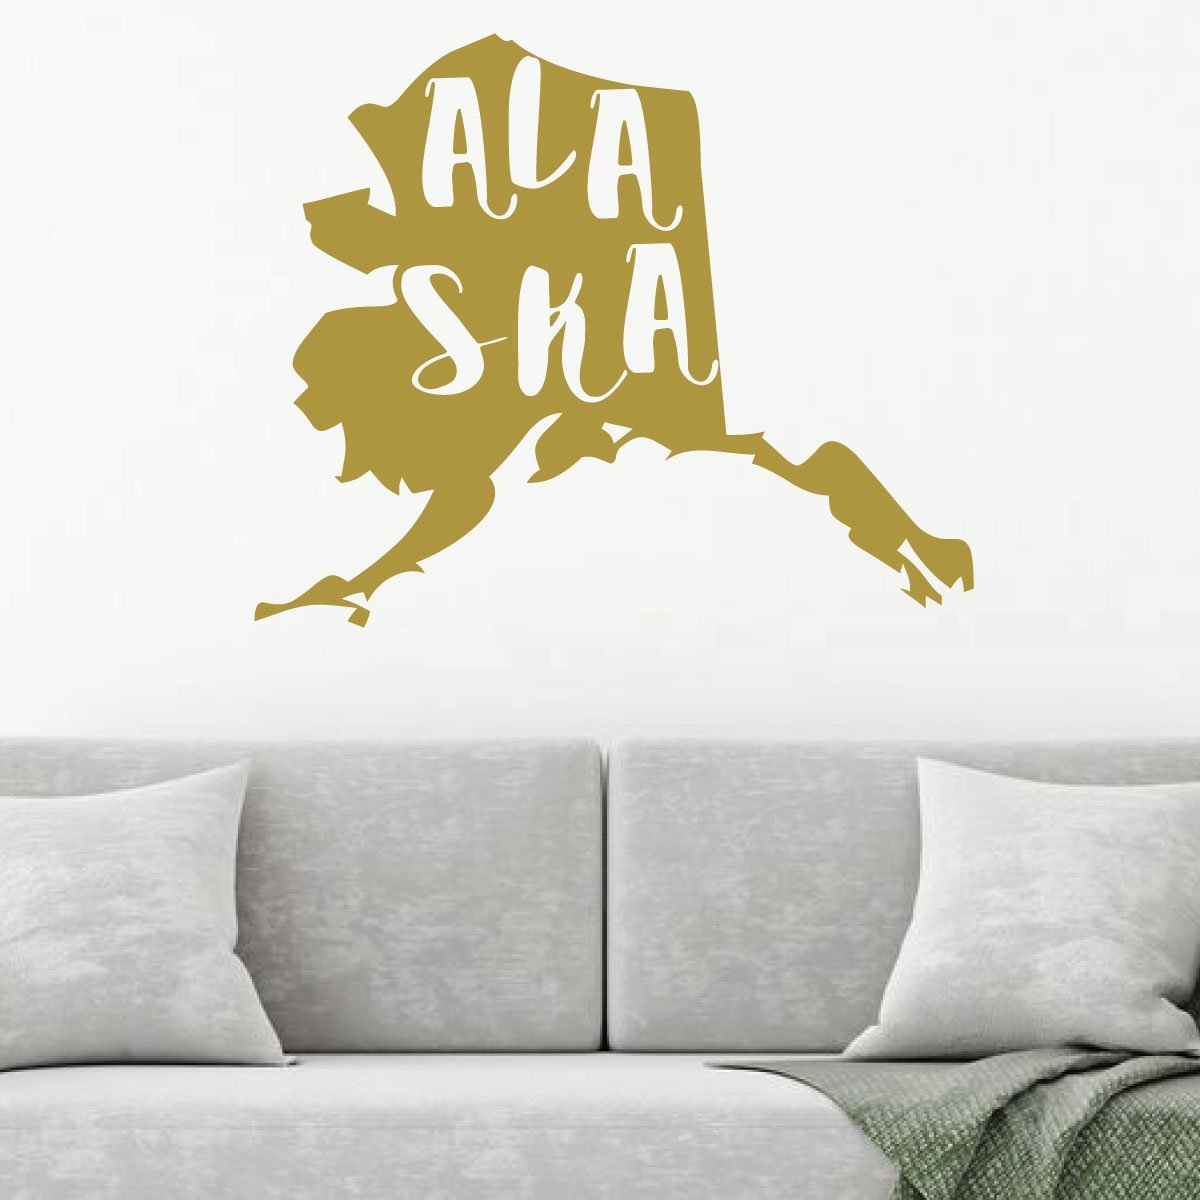 Excellent Alaska Name And State Silhouette Wall Decal Vinyl Design Home Decor Home Interior And Landscaping Ologienasavecom